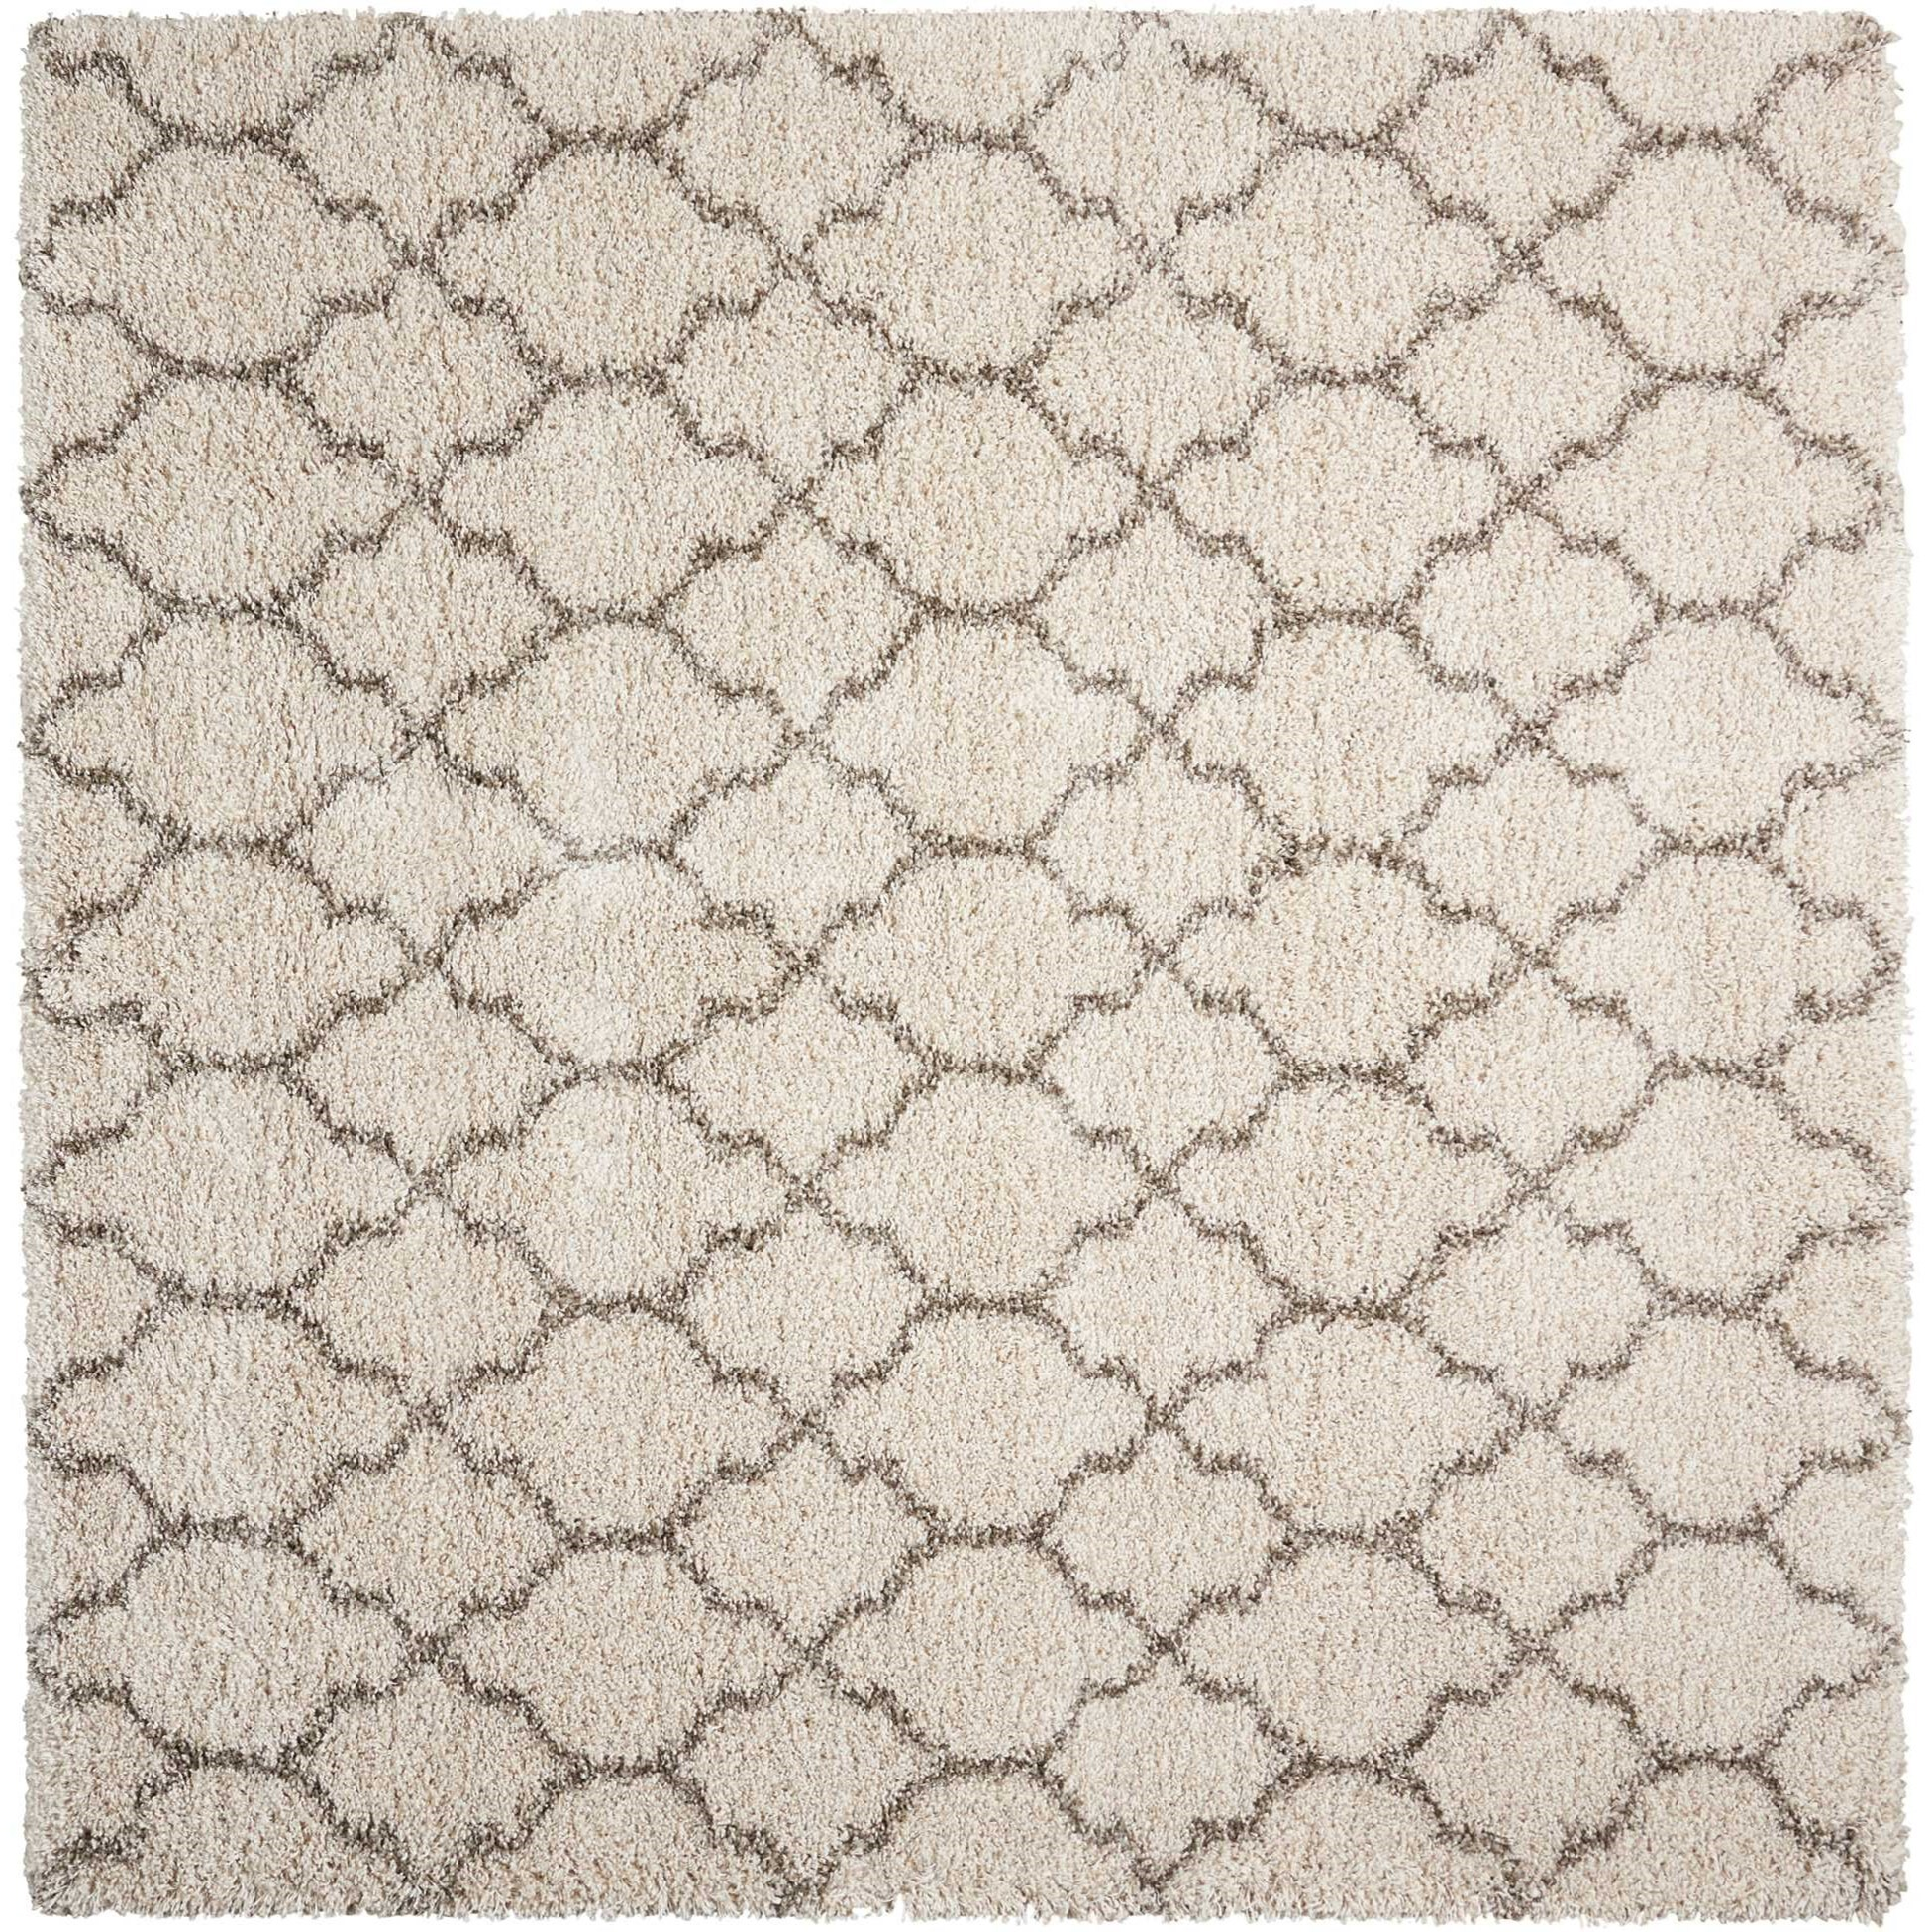 "Amore 6'7"" x 6'7"" Cream Rectangle Rug by Nourison at Home Collections Furniture"